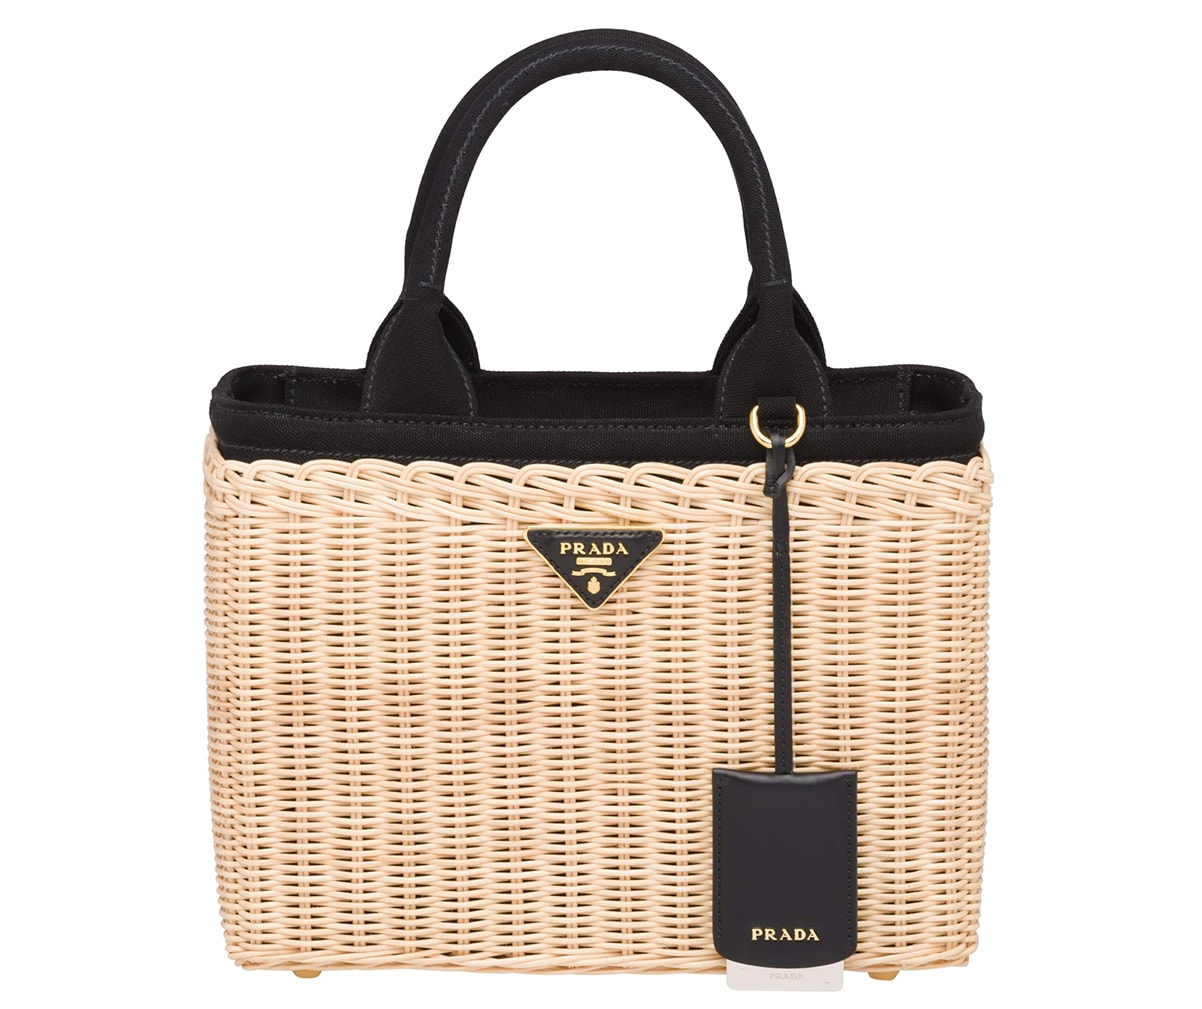 Prada Wicker and Canvas Handbag